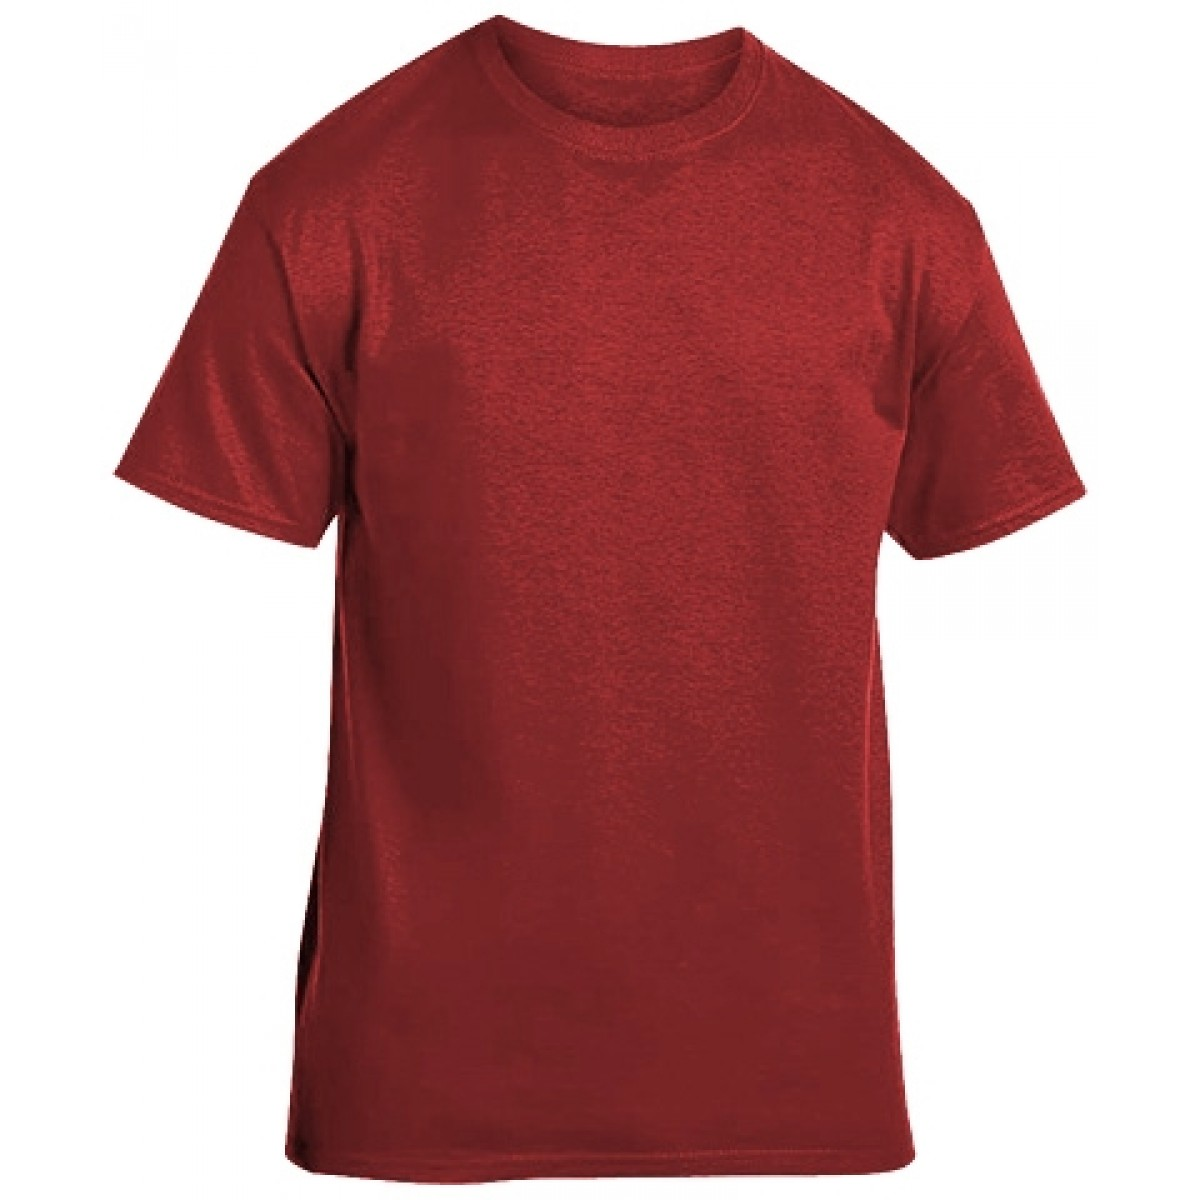 Soft 100% Cotton T-Shirt-Heathered Red-M